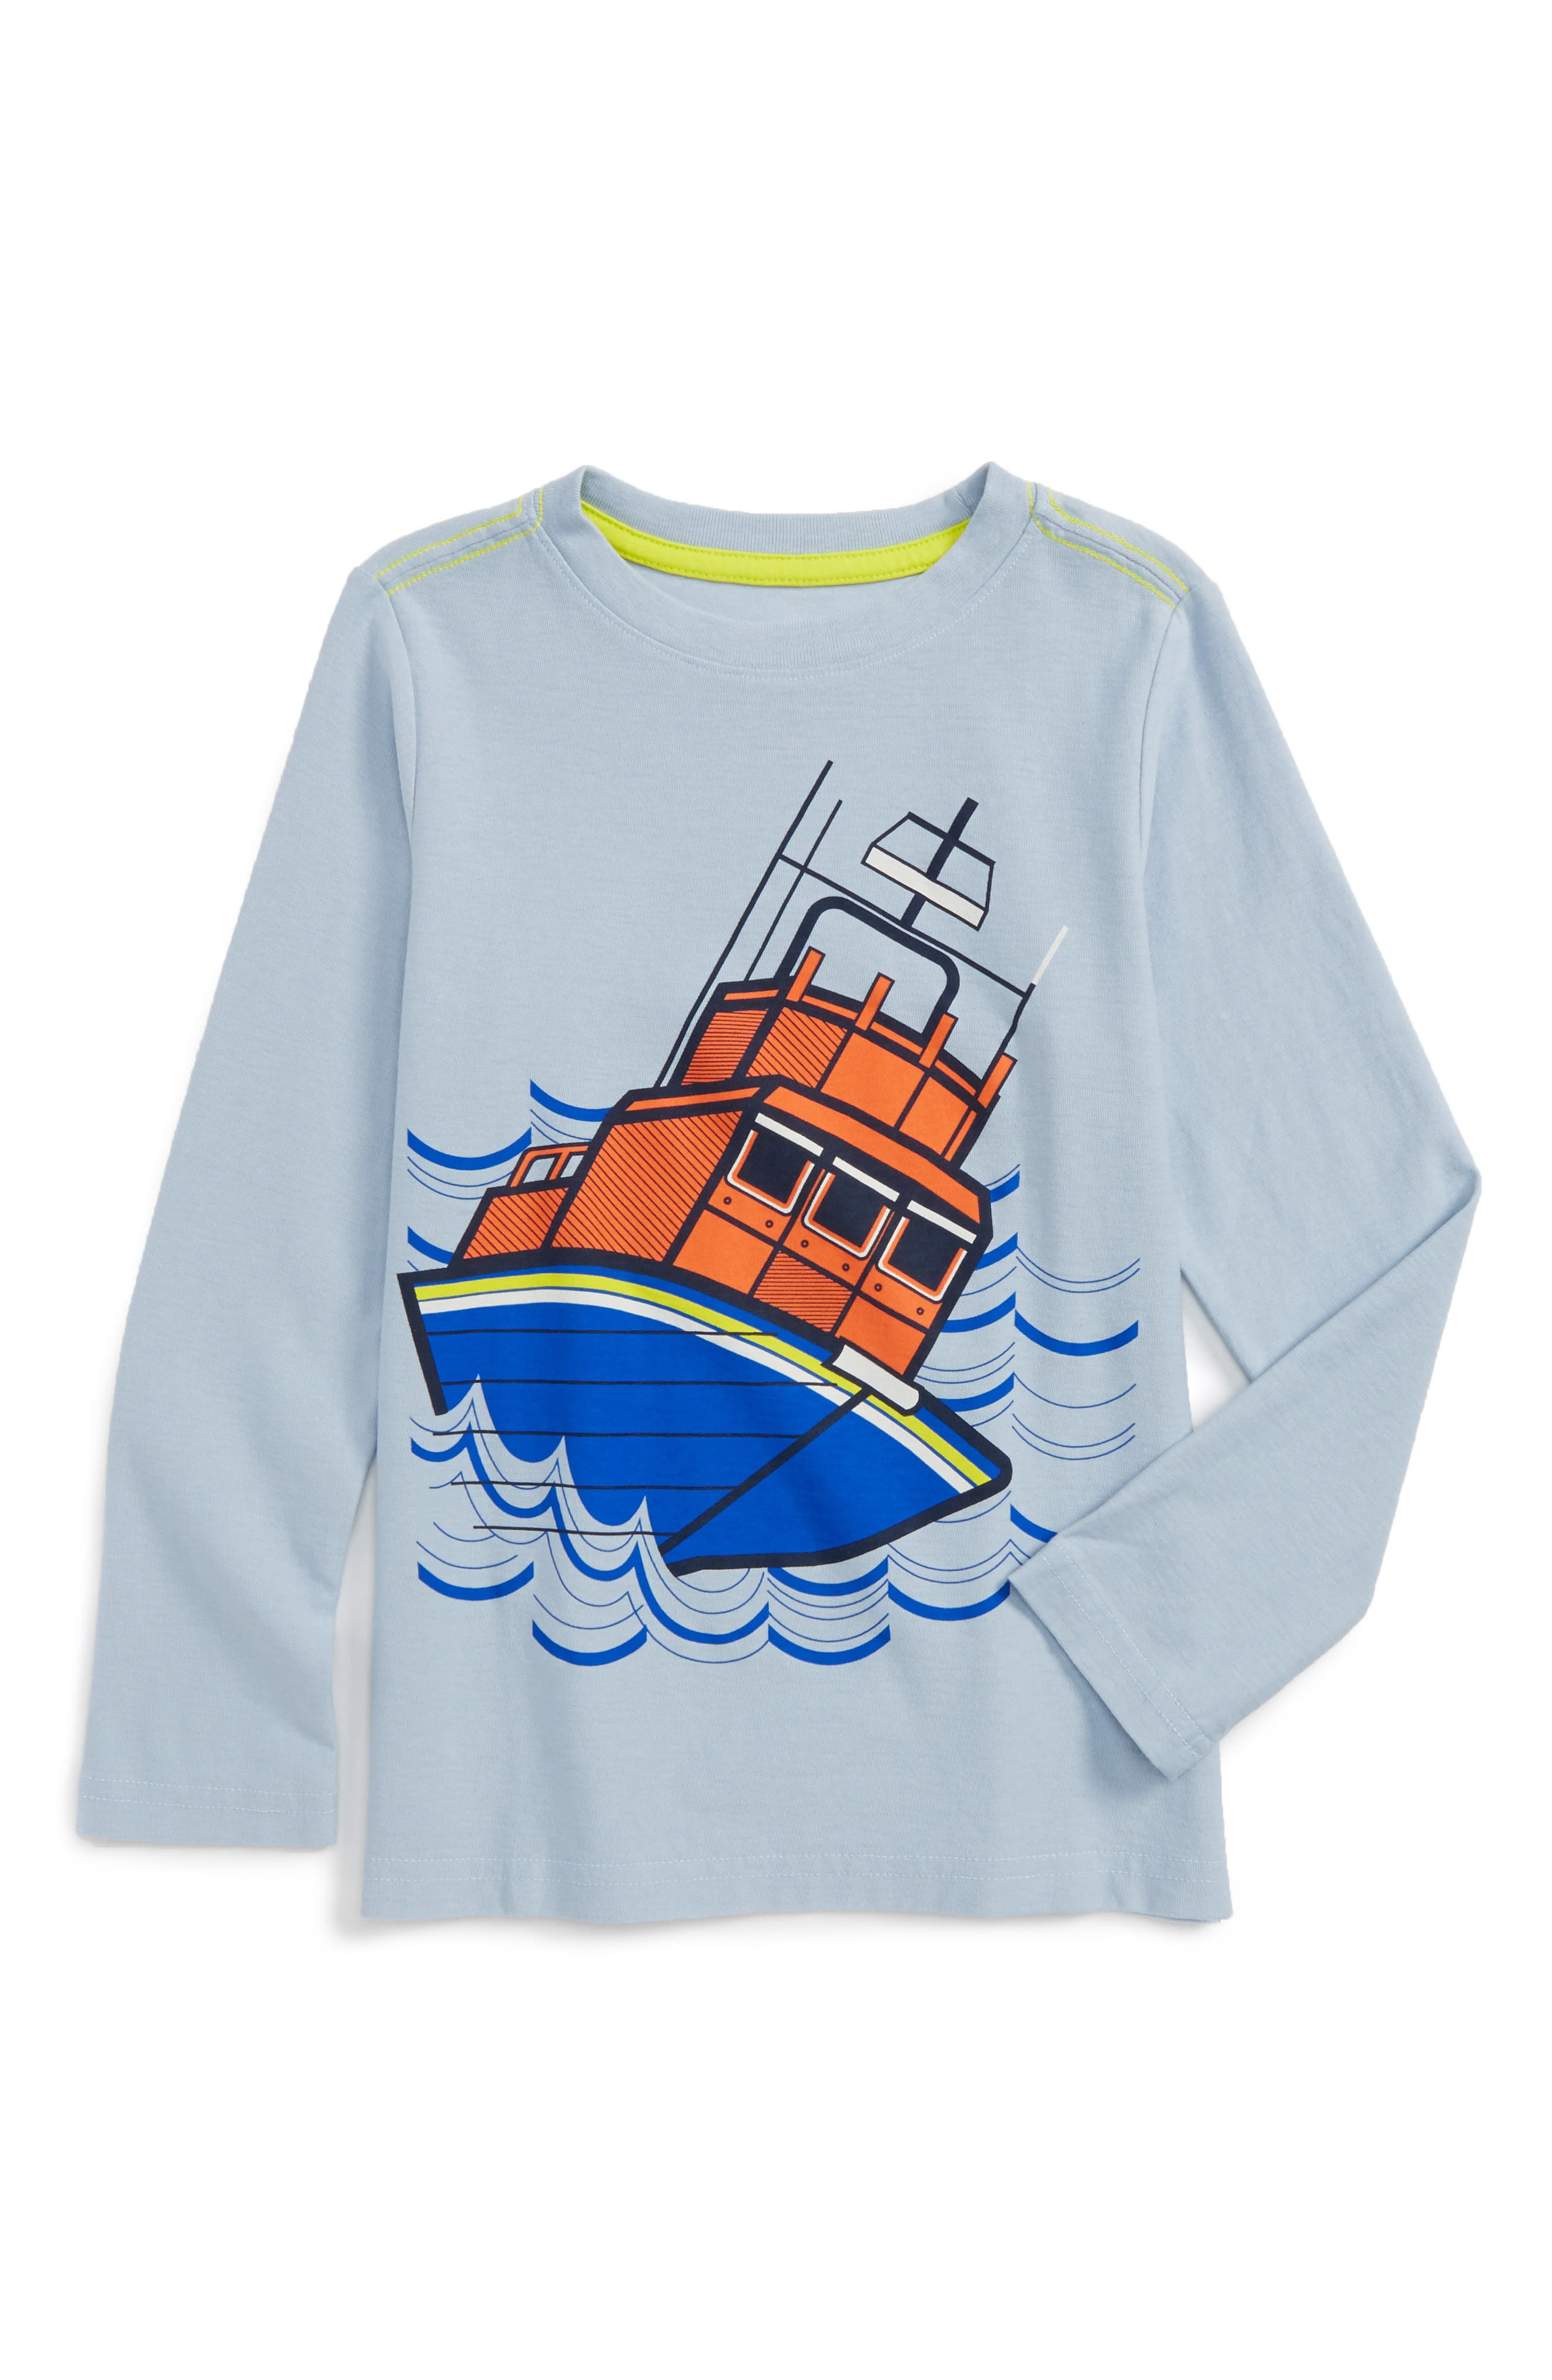 Tea Collection Royal Rescue Graphic T-Shirt (Toddler Boys & Little Boys)